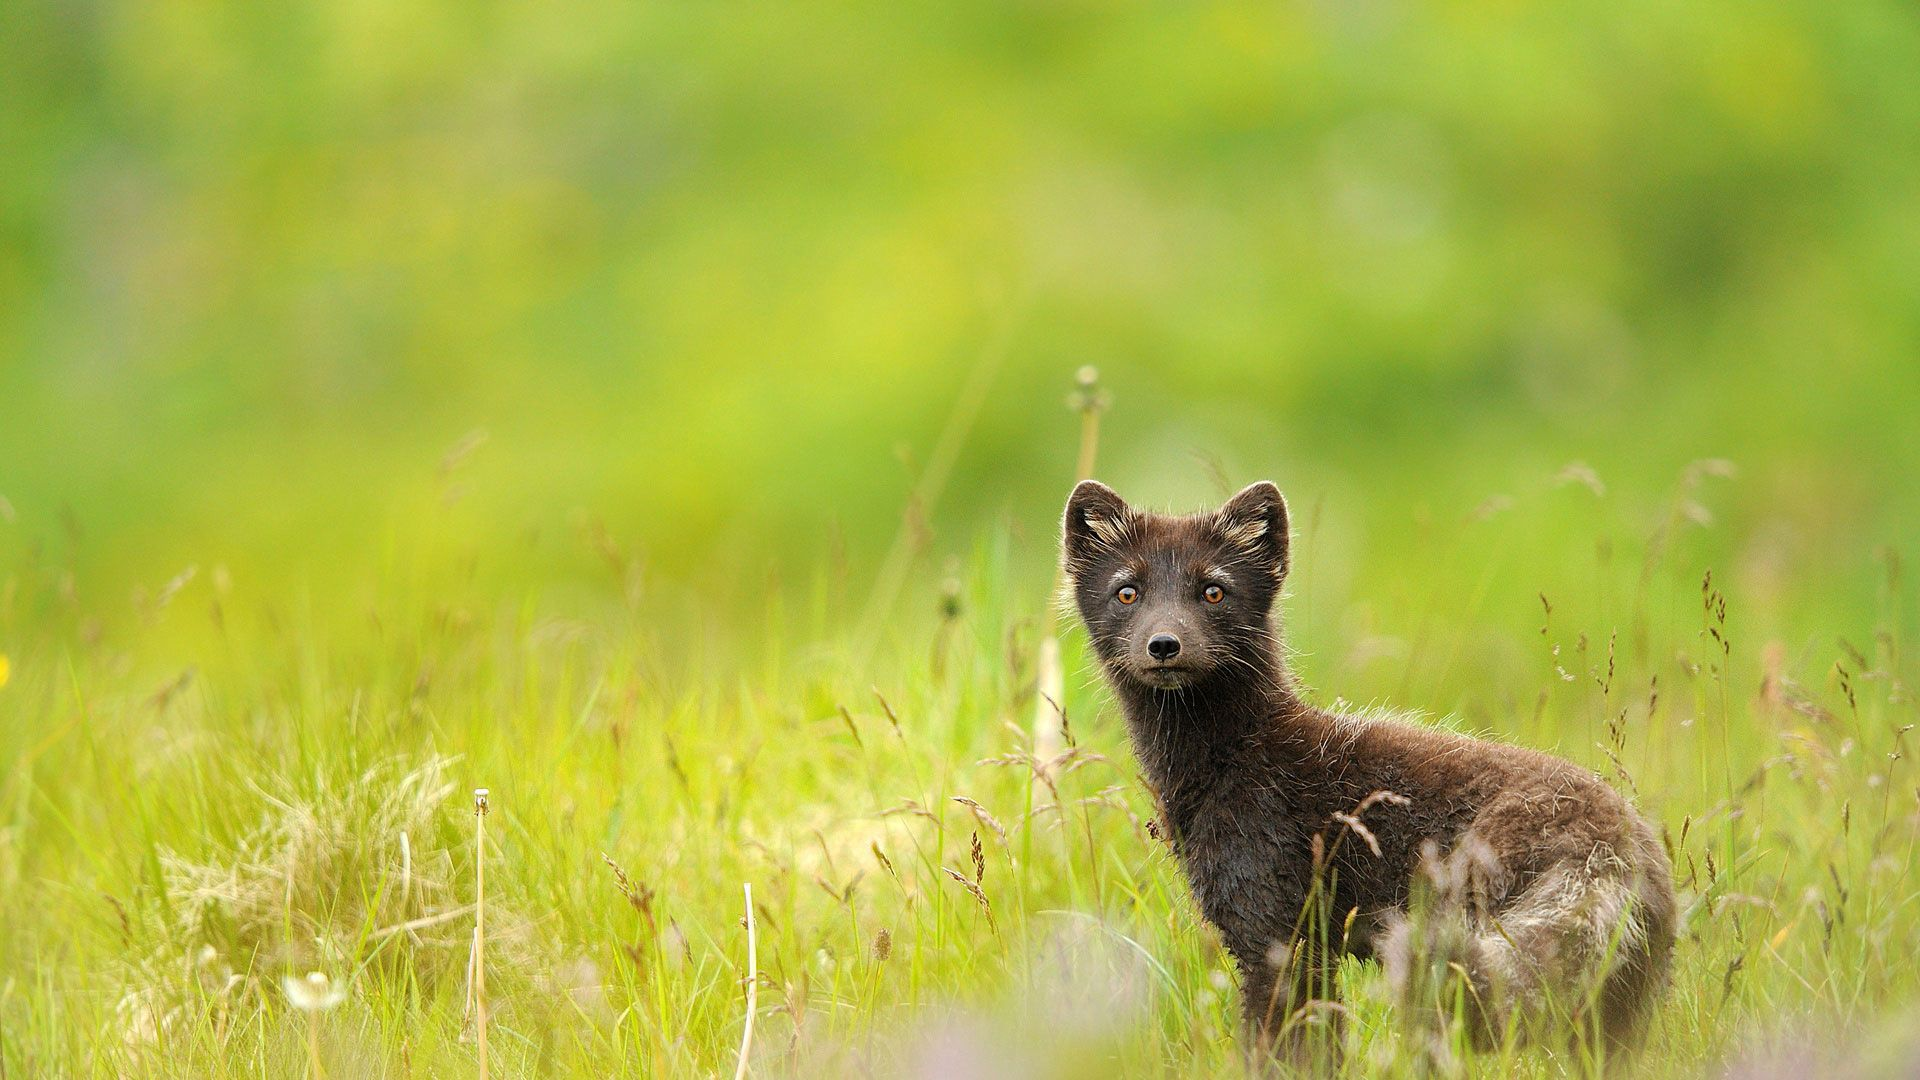 78402 download wallpaper Animals, Grass, Field, Dandelions, Sable, Eyes screensavers and pictures for free